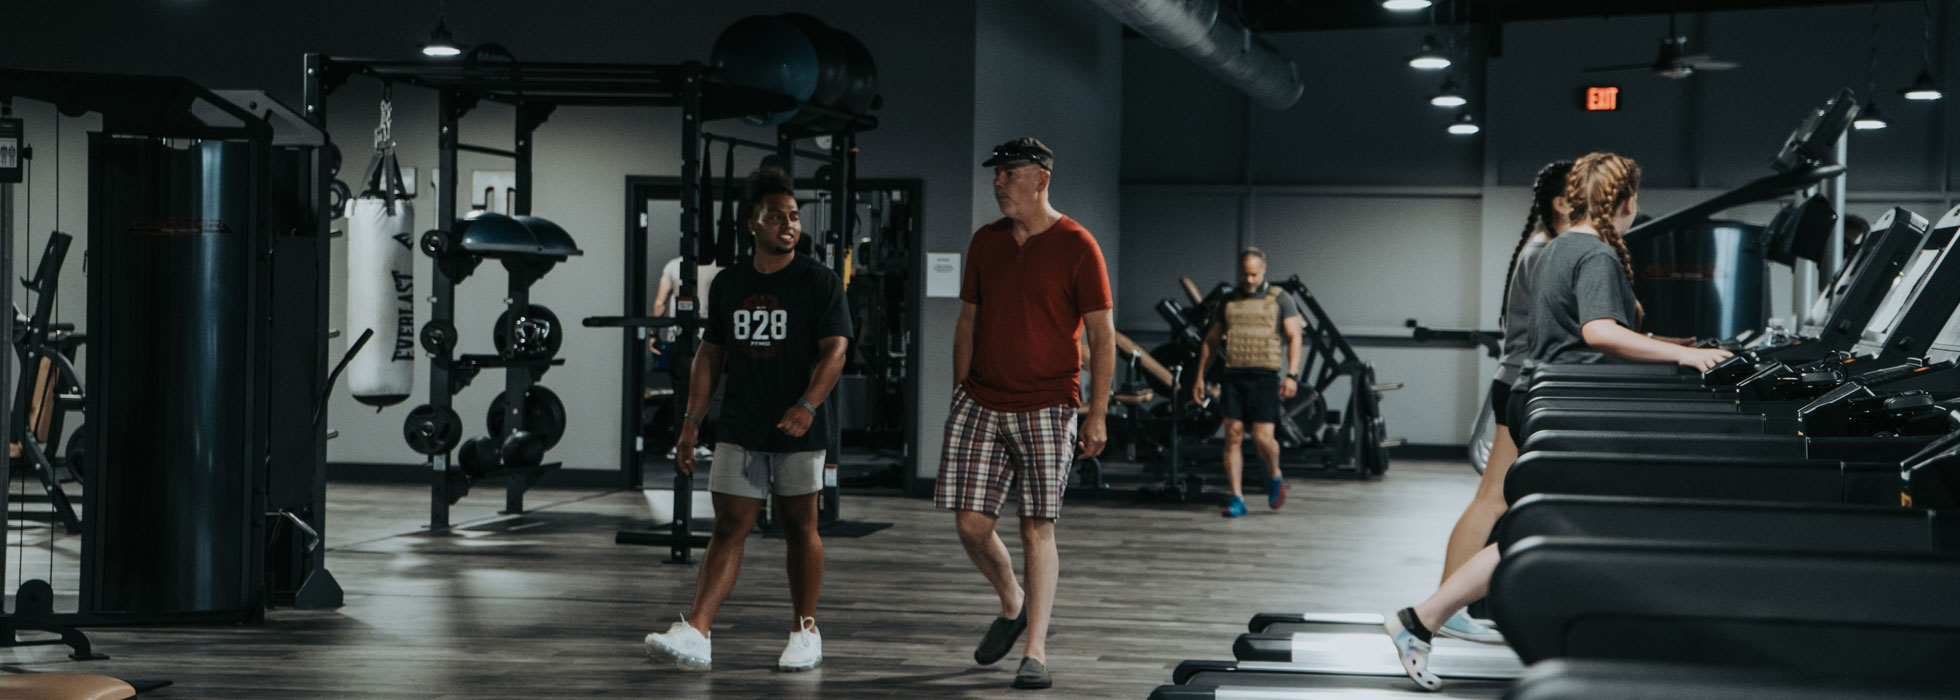 Why 828 Fitness Is Ranked One Of The Best Gyms in Brevard NC, Why 828 Fitness Is Ranked One Of The Best Gyms near Etowah NC, Why 828 Fitness Is Ranked One Of The Best Gyms near Lake Toxaway NC, Why 828 Fitness Is Ranked One Of The Best Gyms near Penrose NC, Why 828 Fitness Is Ranked One Of The Best Gyms near Pisgah Forest NC, Why 828 Fitness Is Ranked One Of The Best Gyms near Cedar Mountain NC